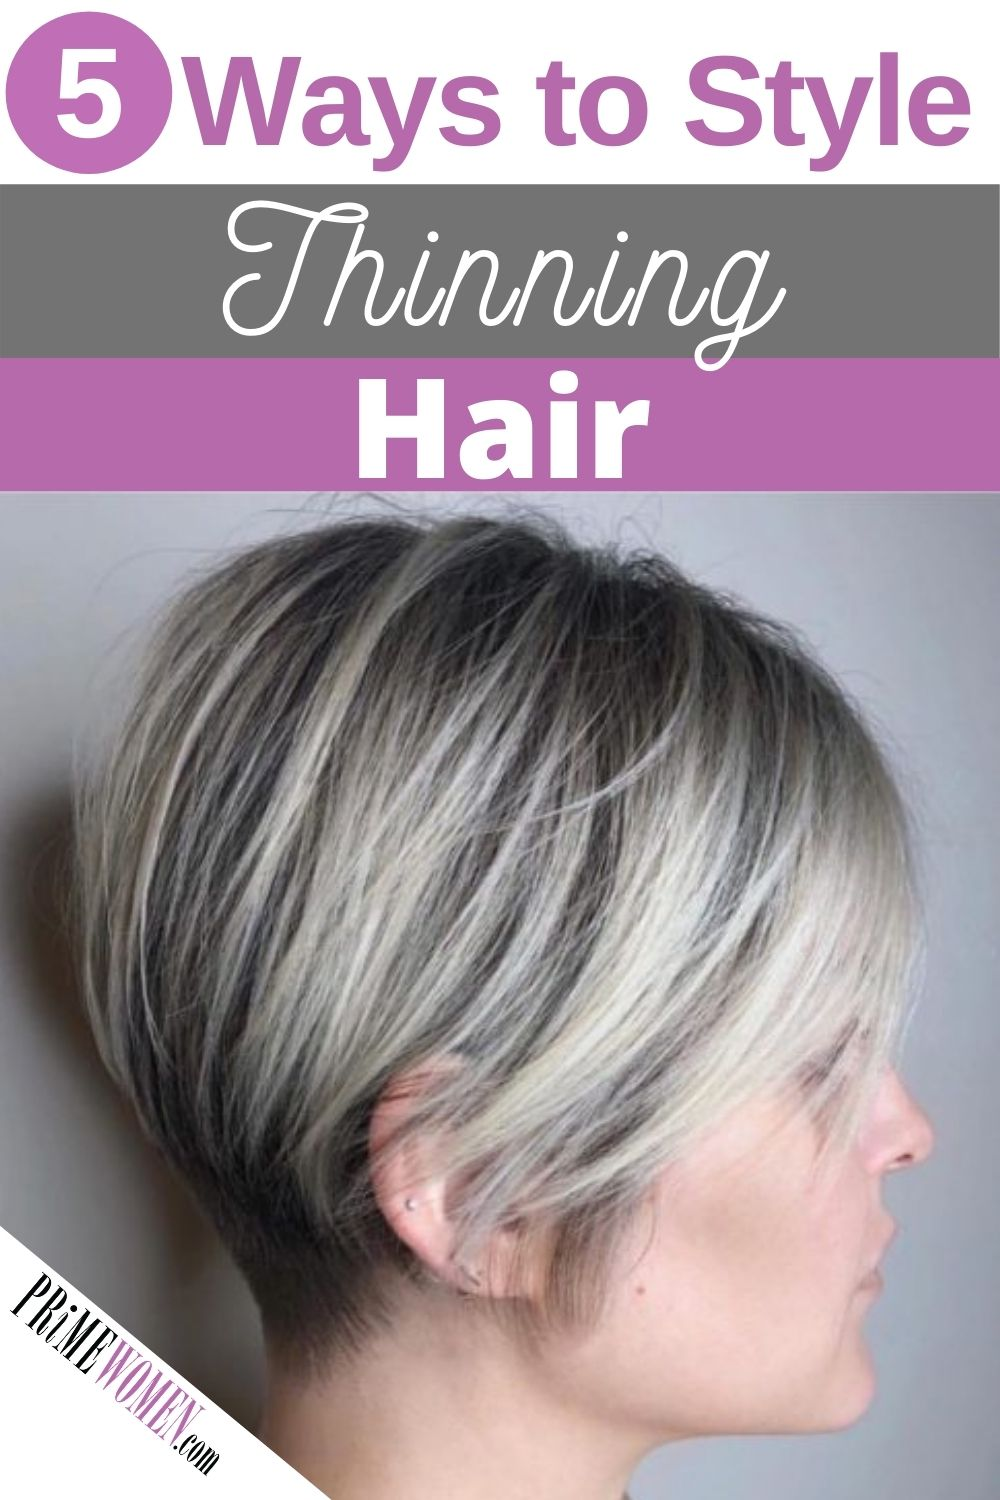 5 Ways to Style Thinning Hair